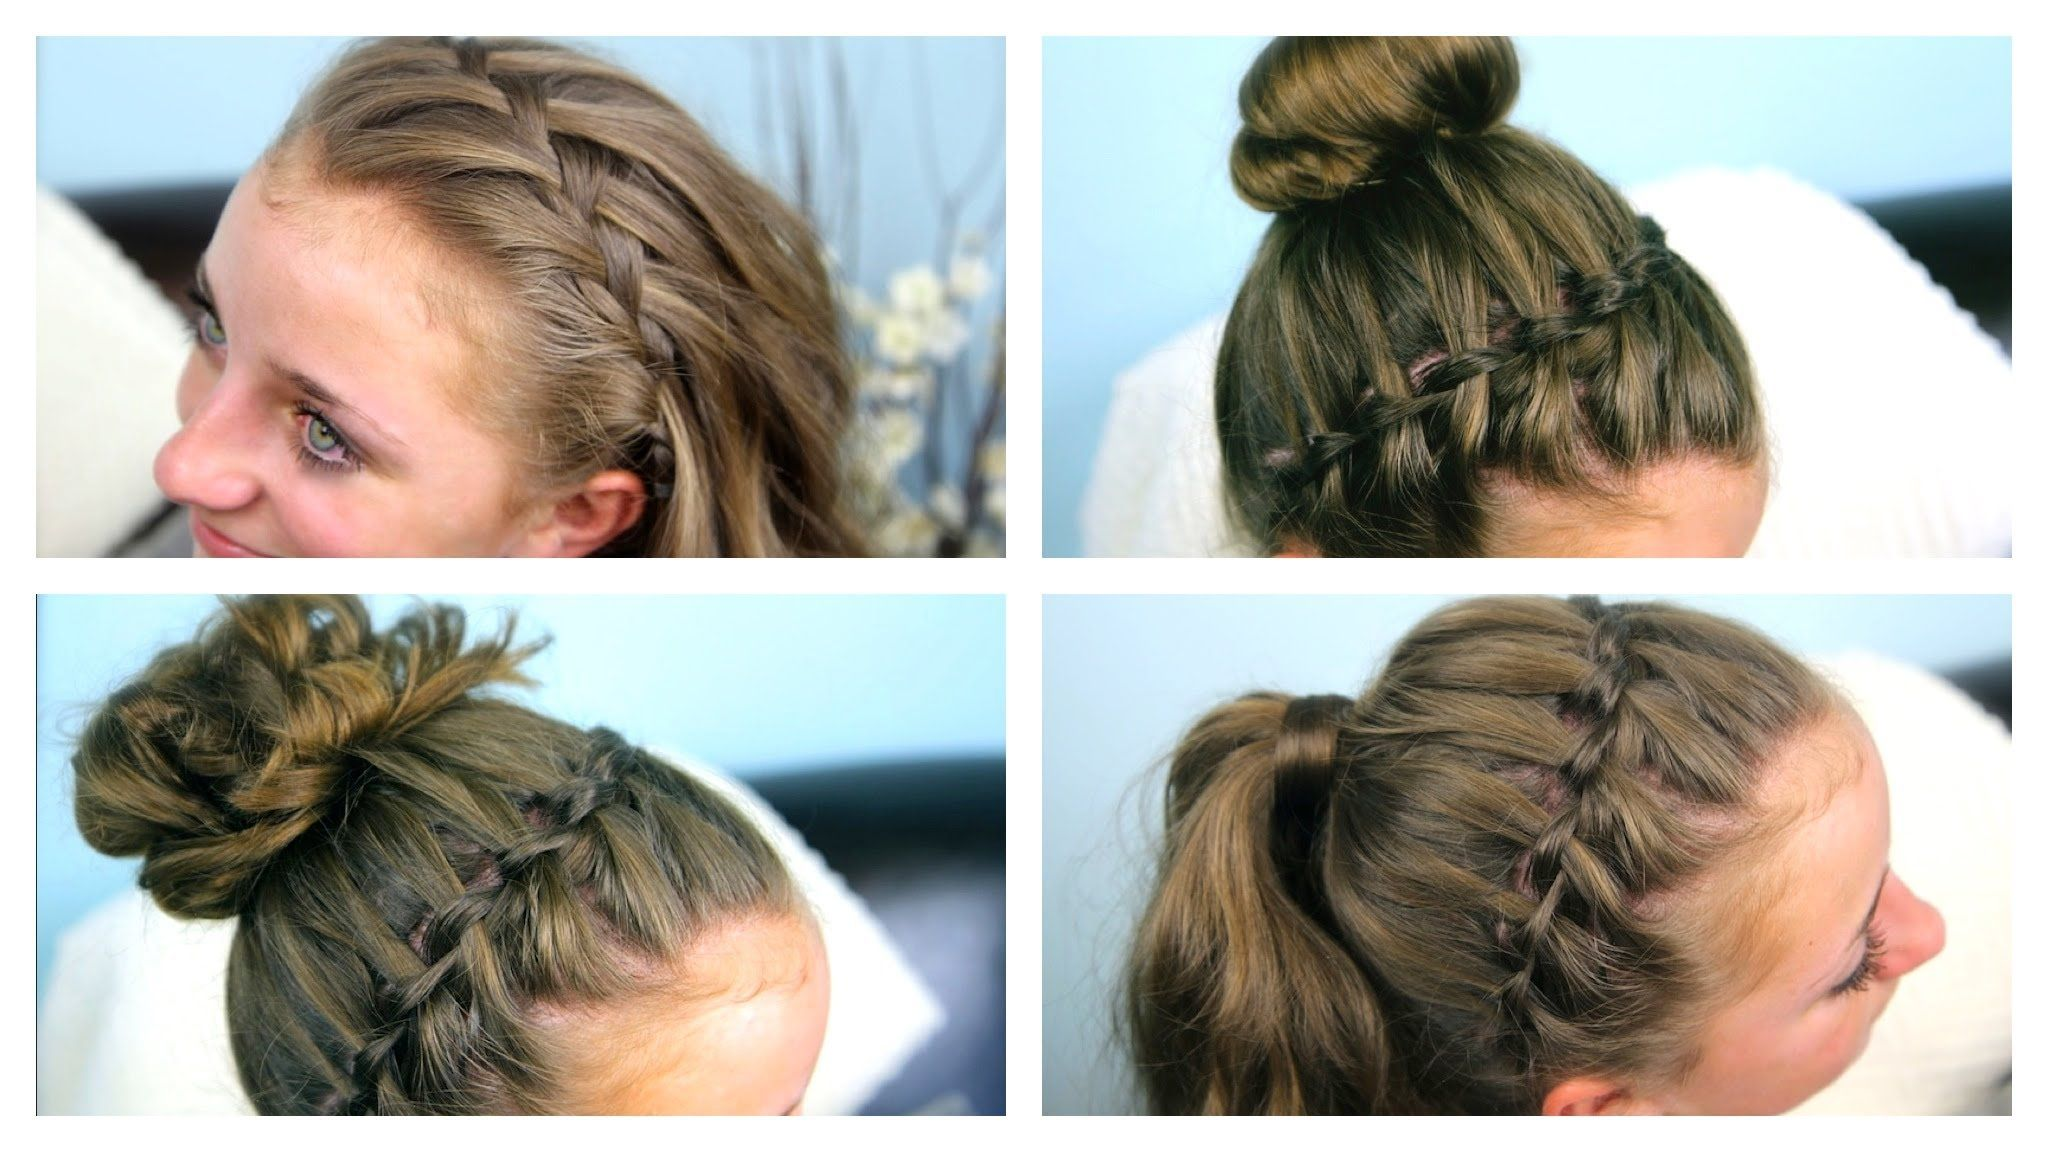 Waterfall braid combo cute girls hairstyles places to visit